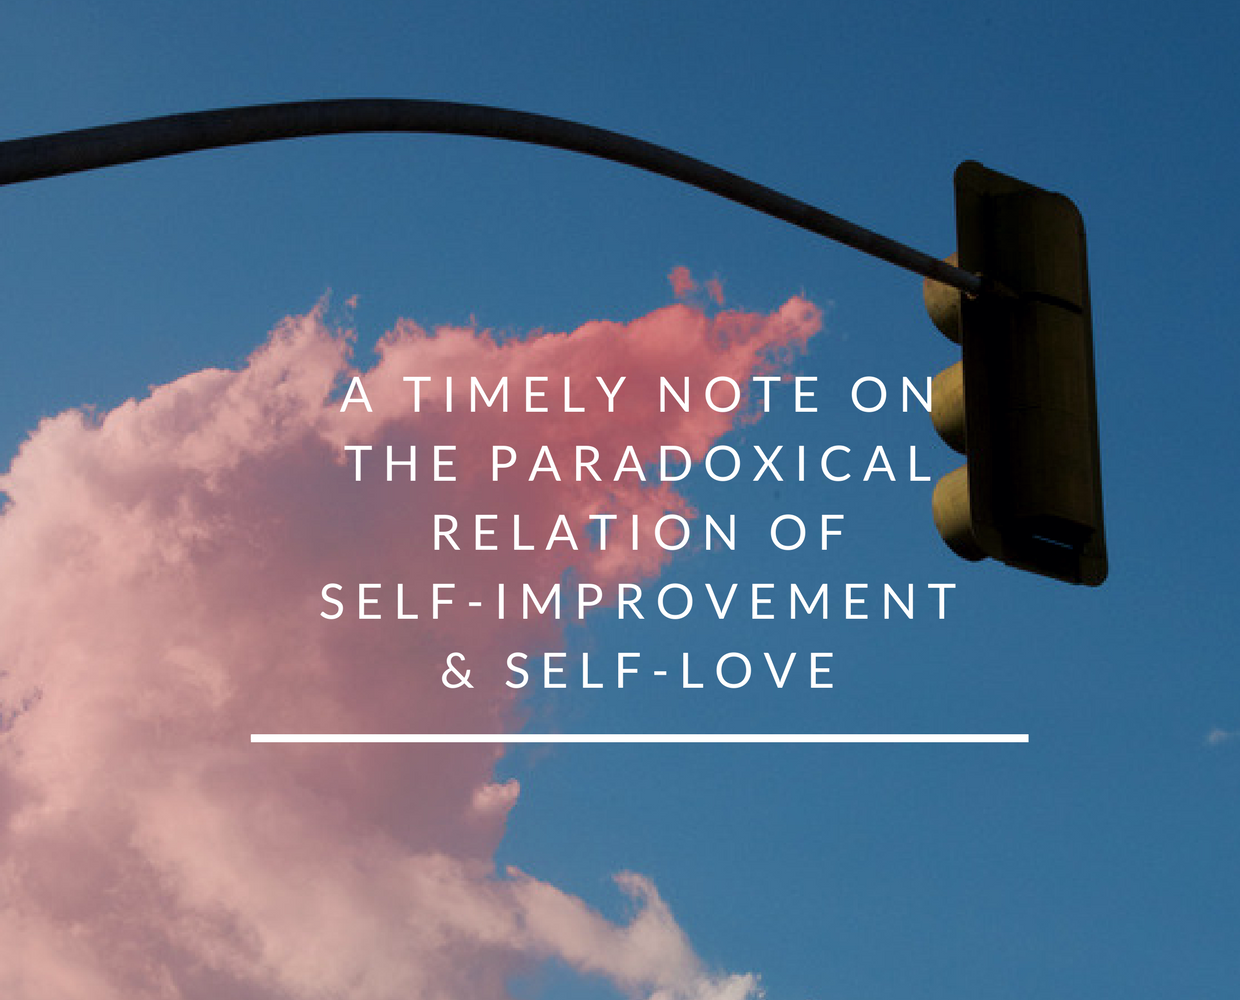 A timely note on the paradoxical relation of self-improvement and self-love